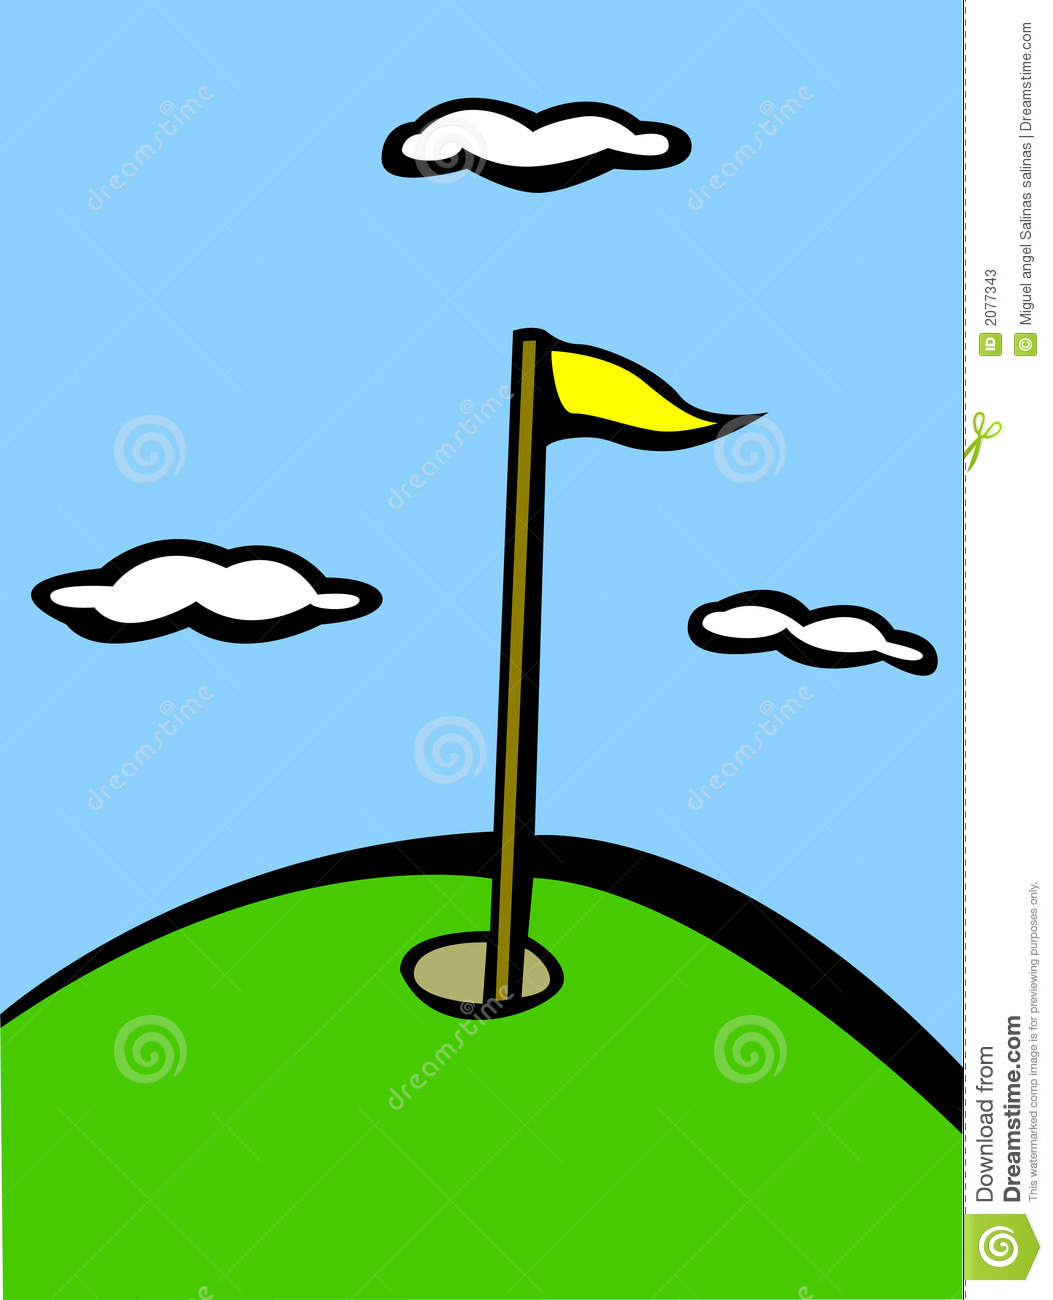 Golf hole flag vector illustration